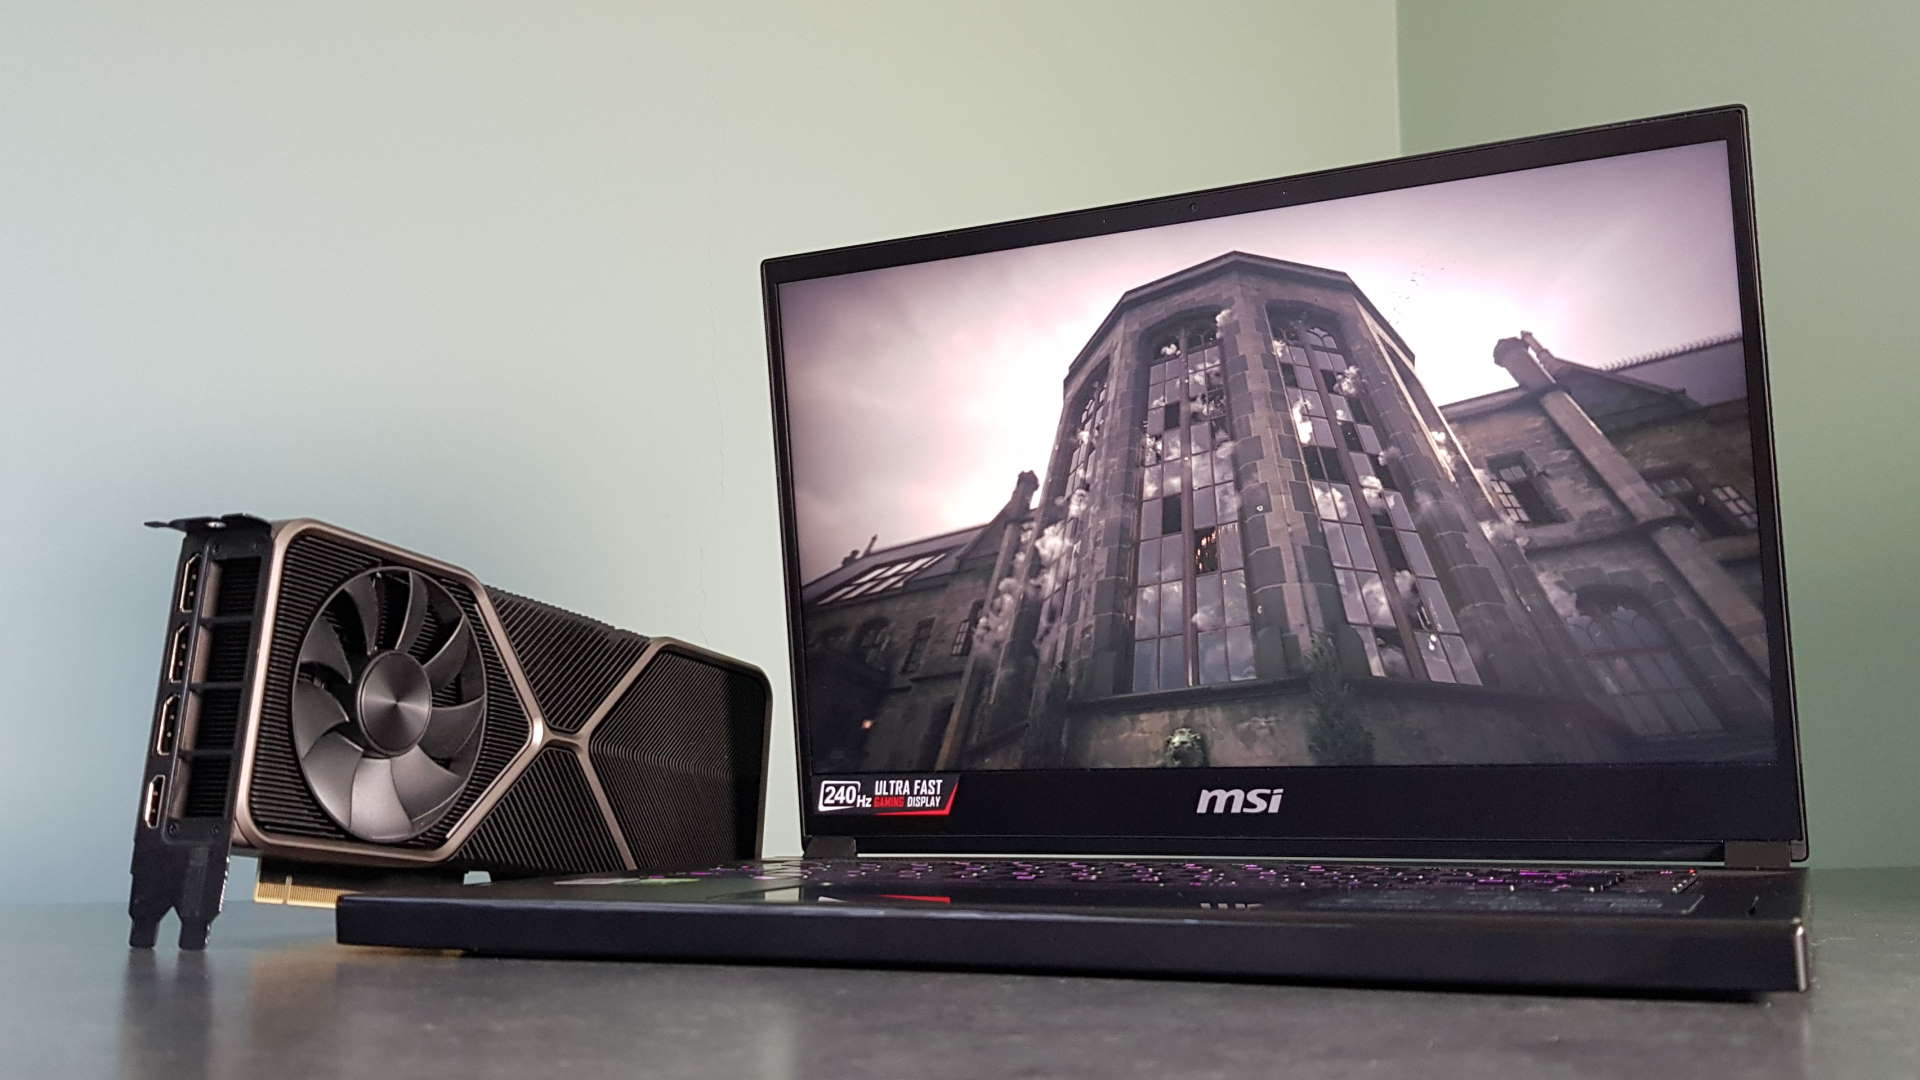 MSI GS66 Stealth RTX 3080 gaming laptop review